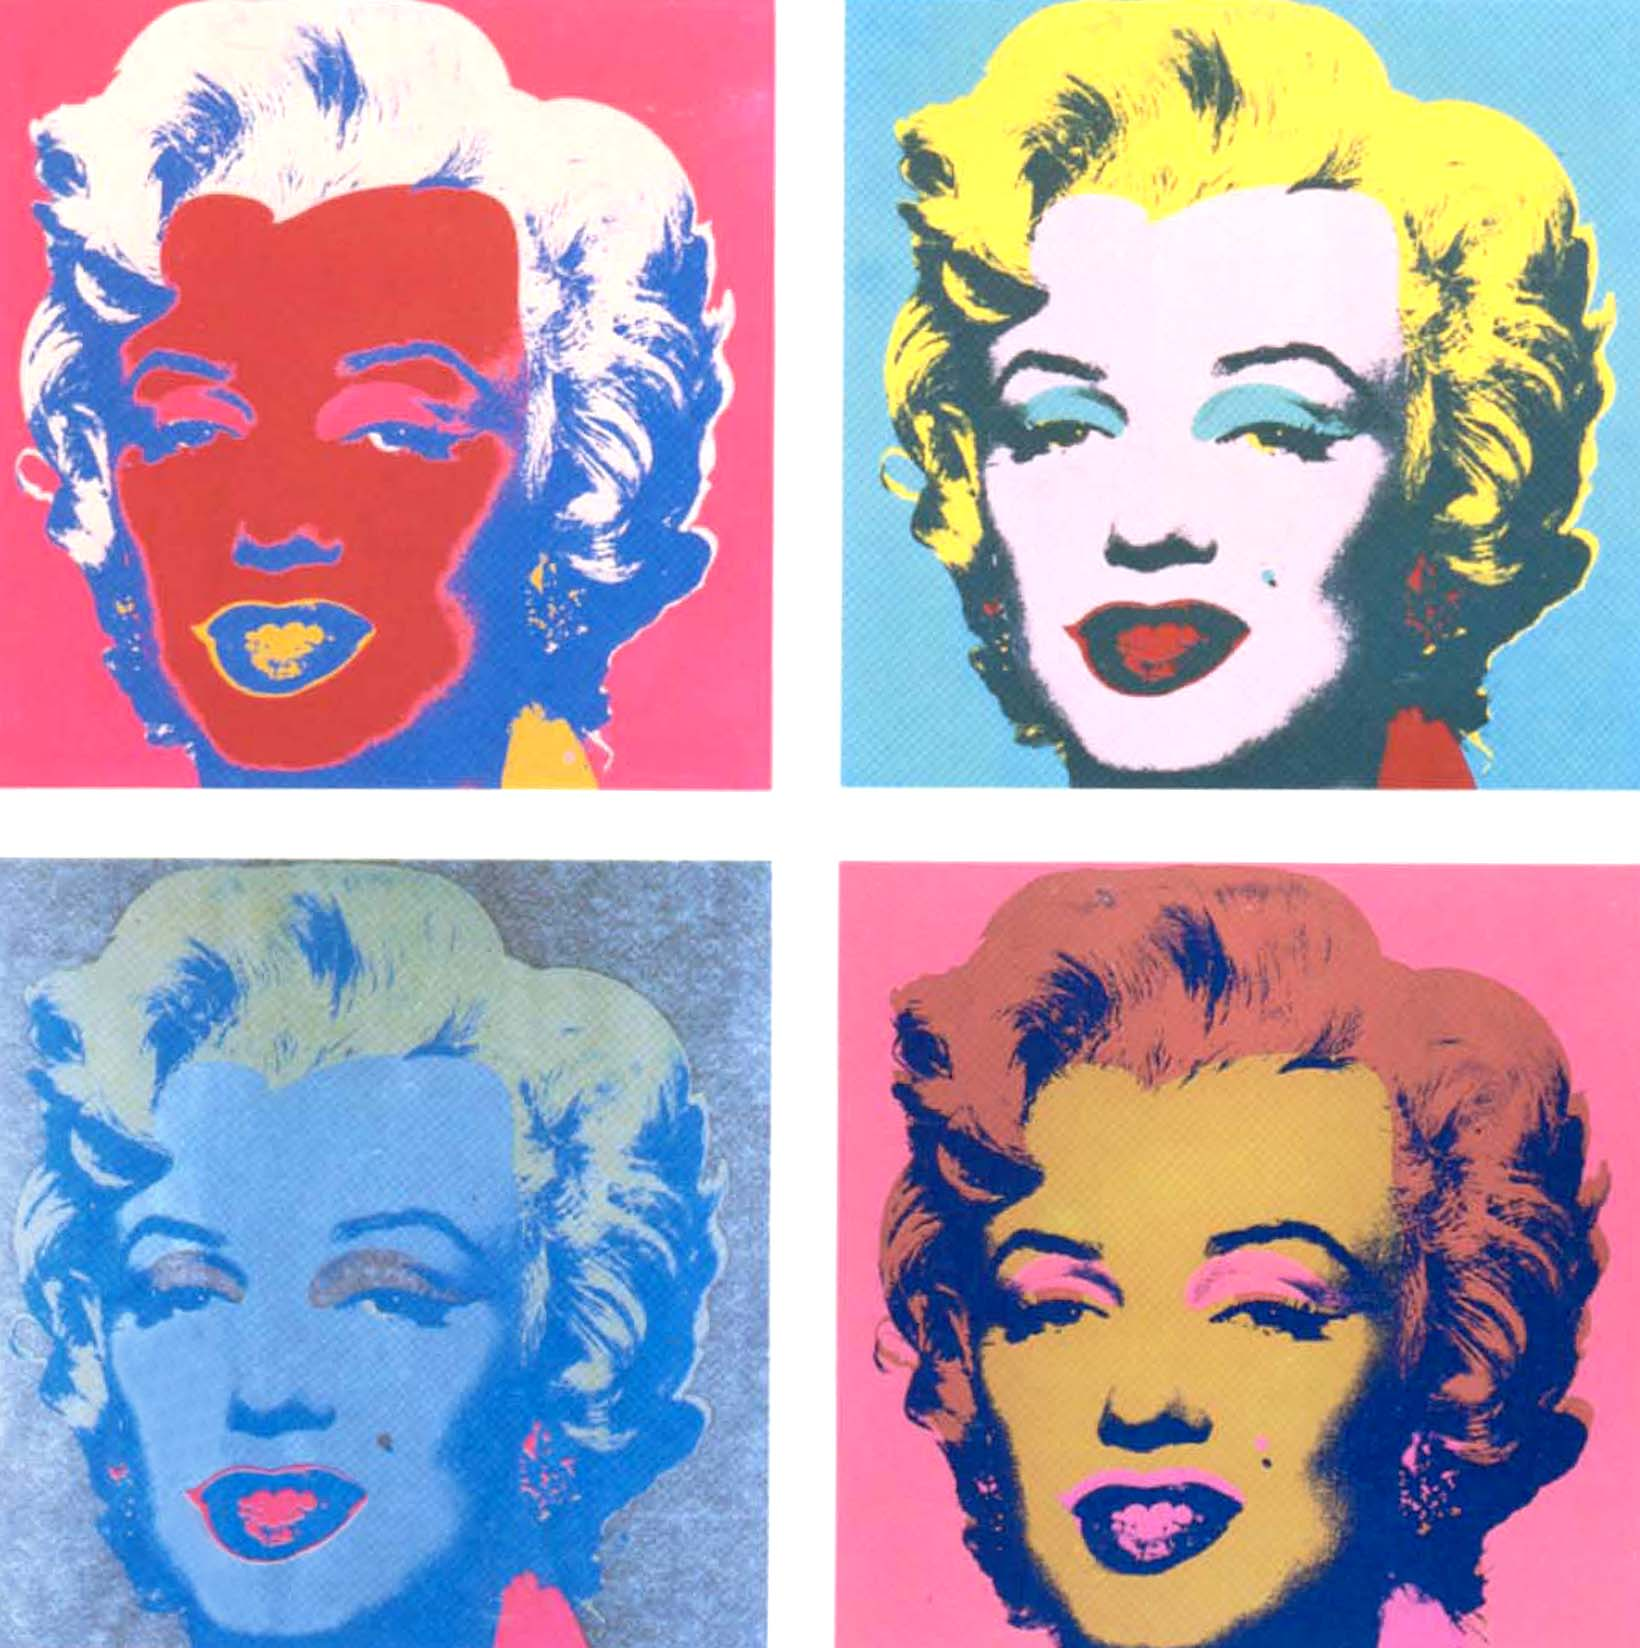 Populaire Andy Warhol And Pop Art Style | PaintYourLife Blog NX89